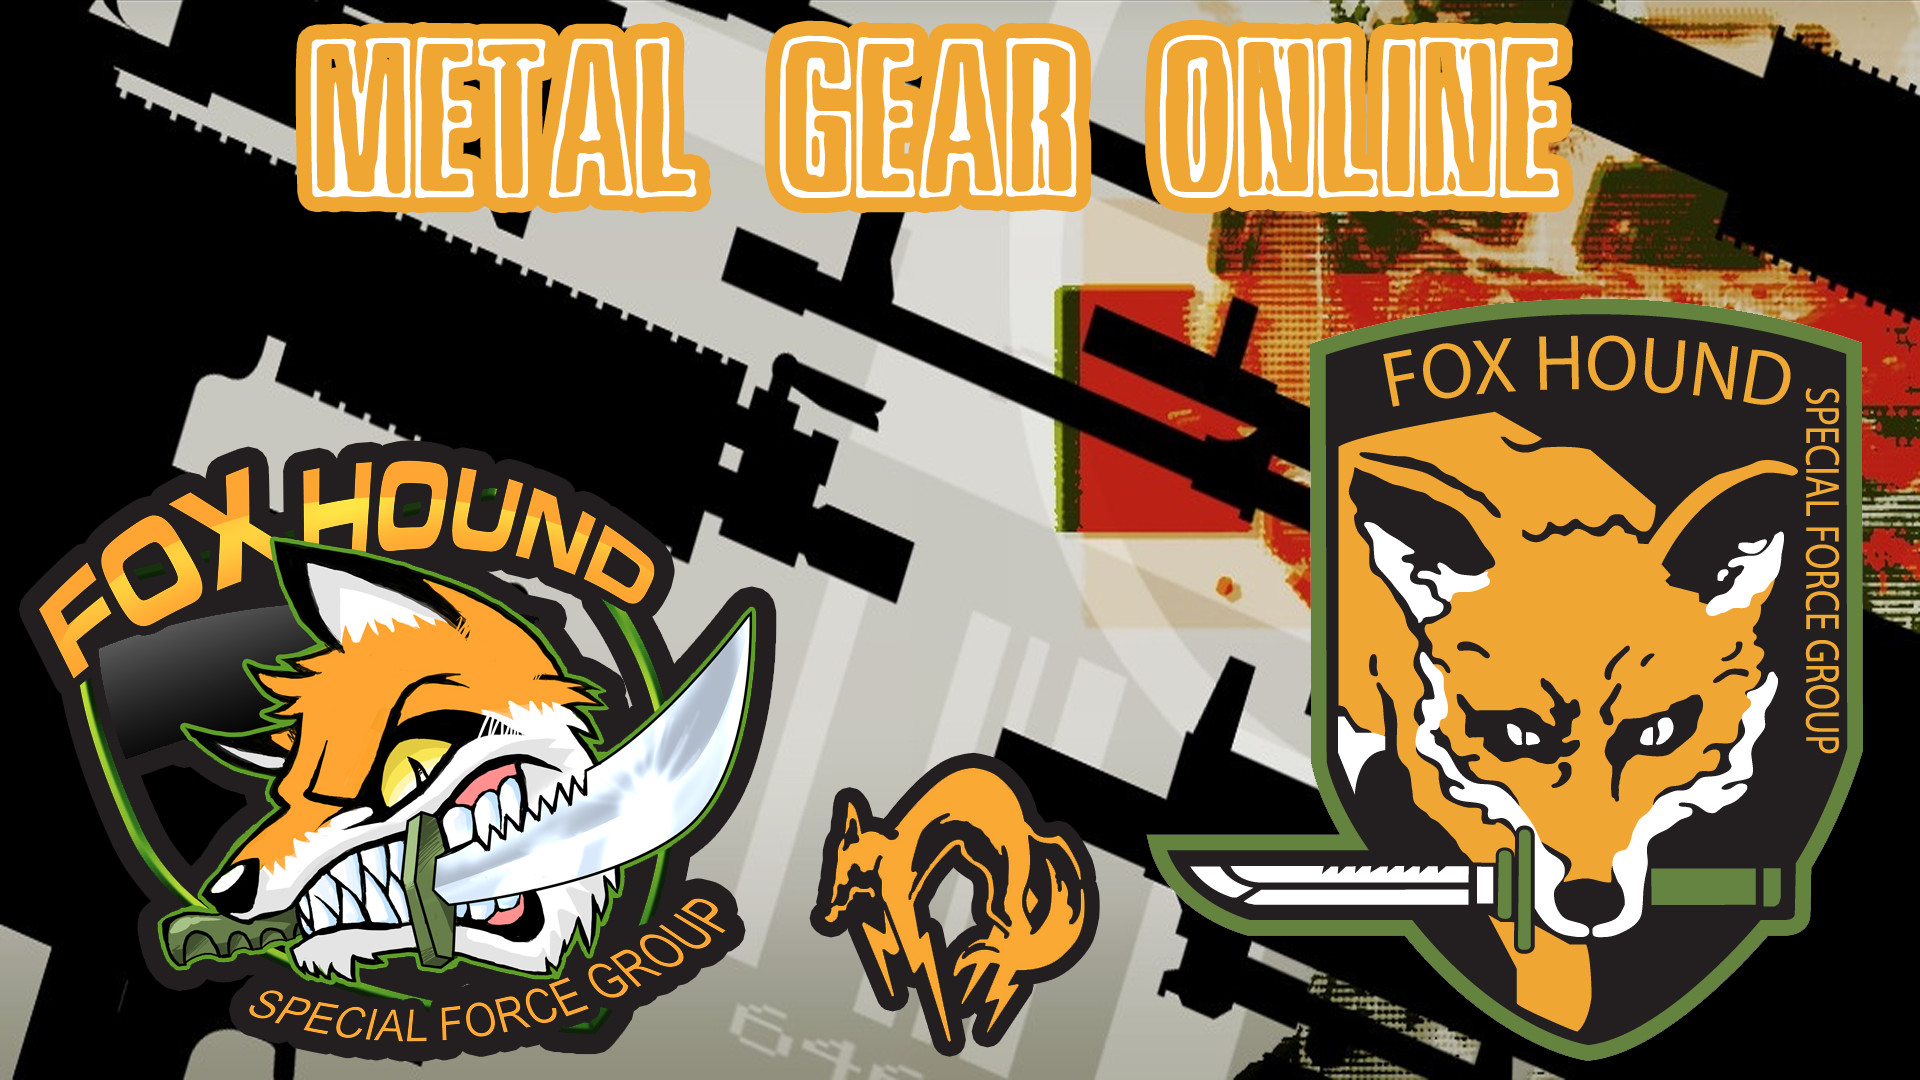 … Foxhound Wallpaper 1920 x 1080 by iCEMAN-187